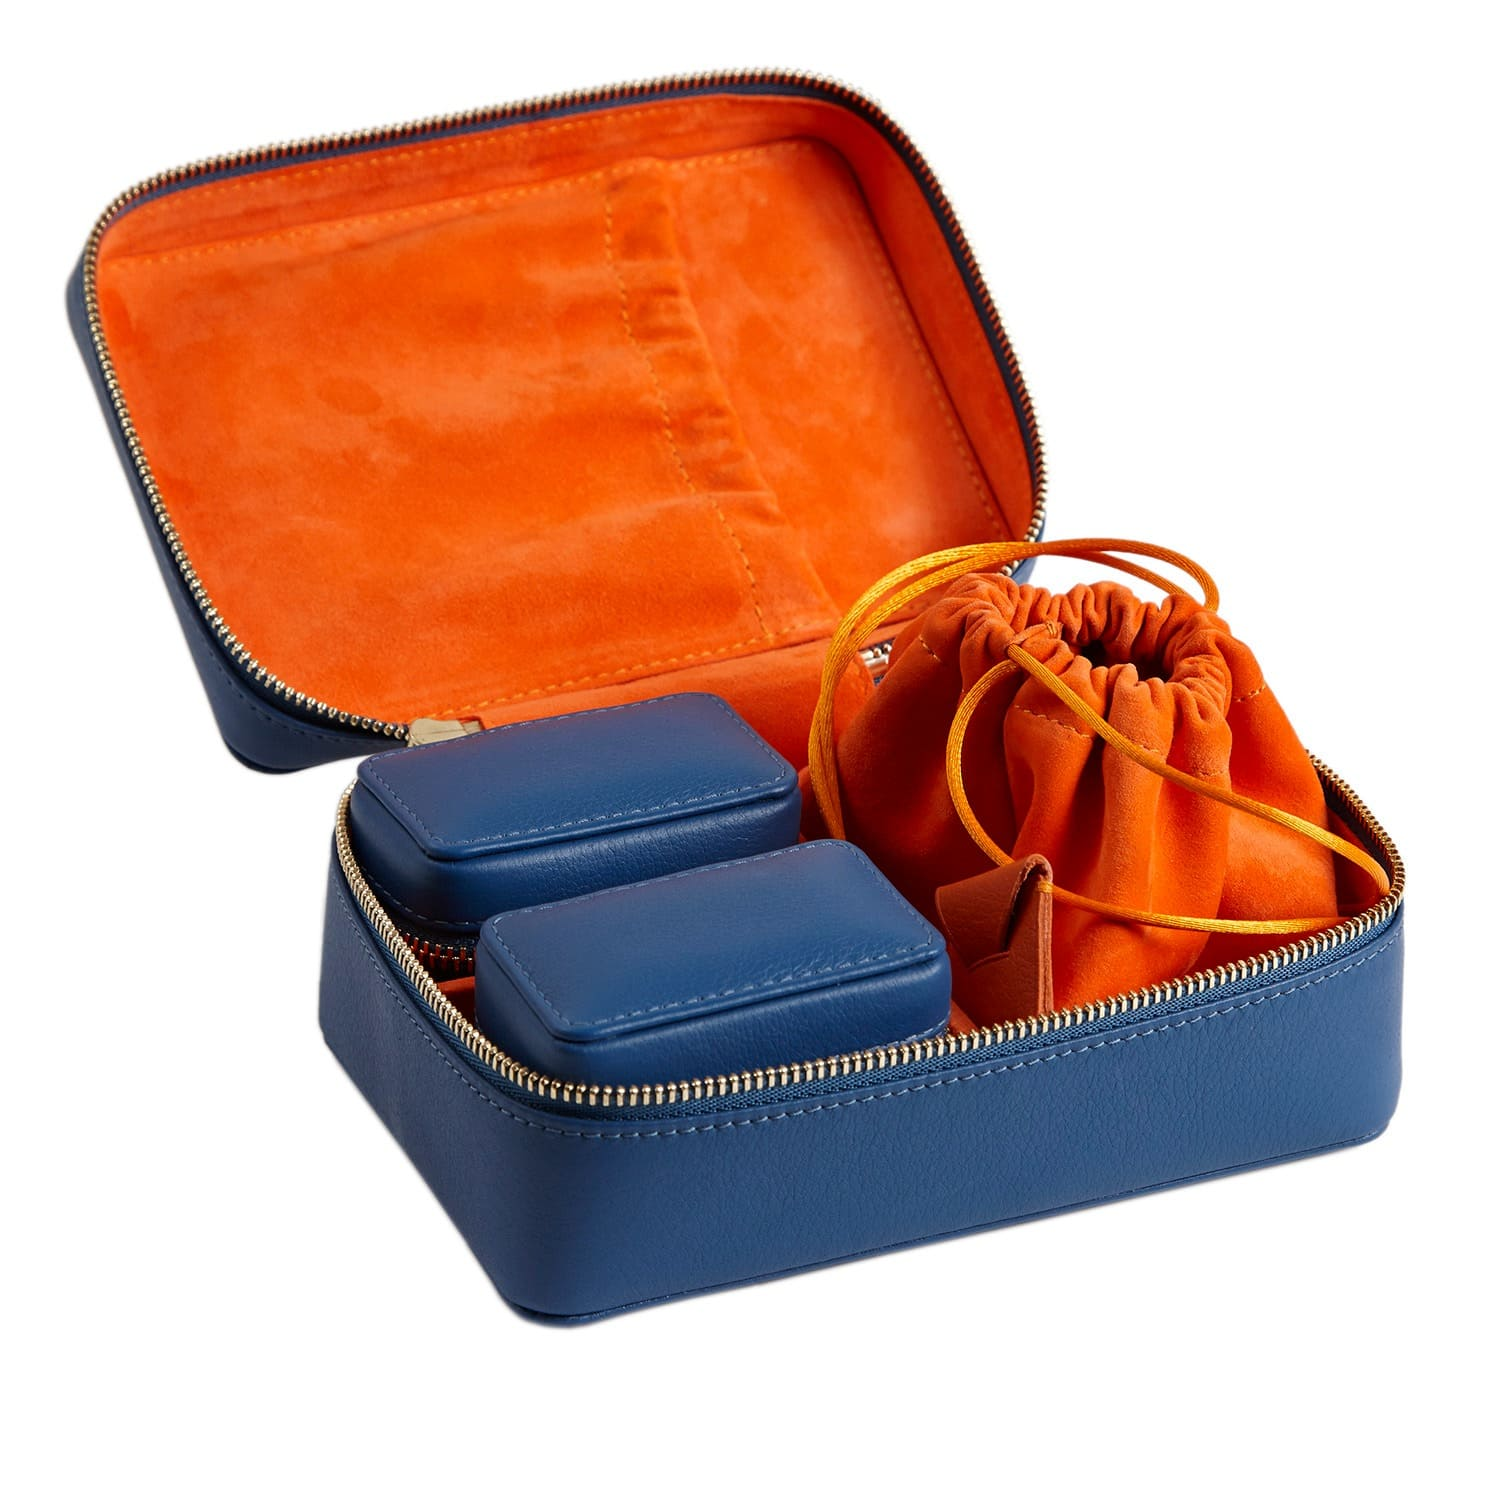 Three Piece Travel Jewellery Case Gift Set Blue By Stow